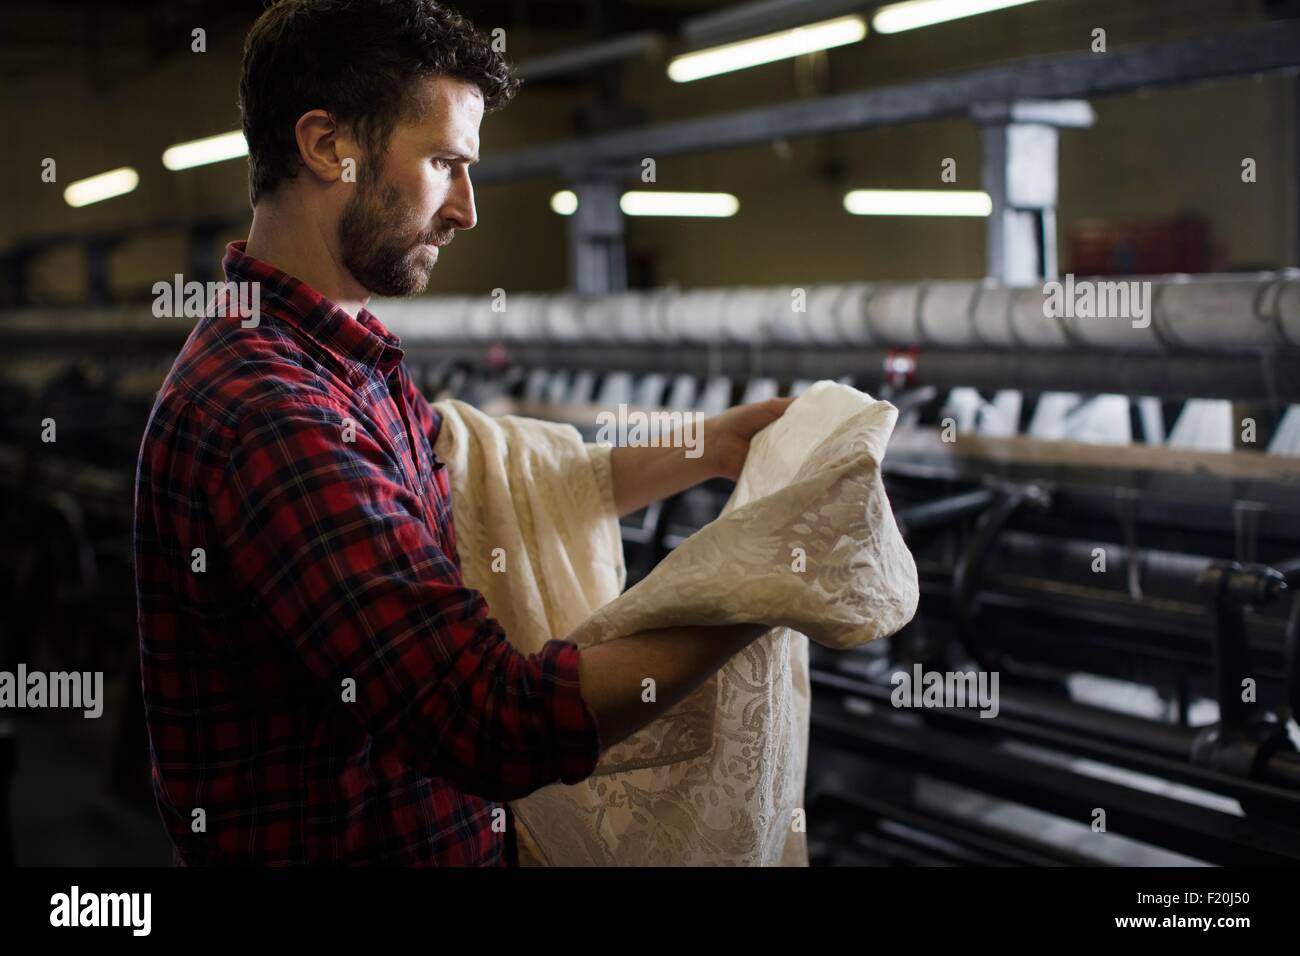 Portrait of male weaver examining lace from old weaving machine in textile mill - Stock Image